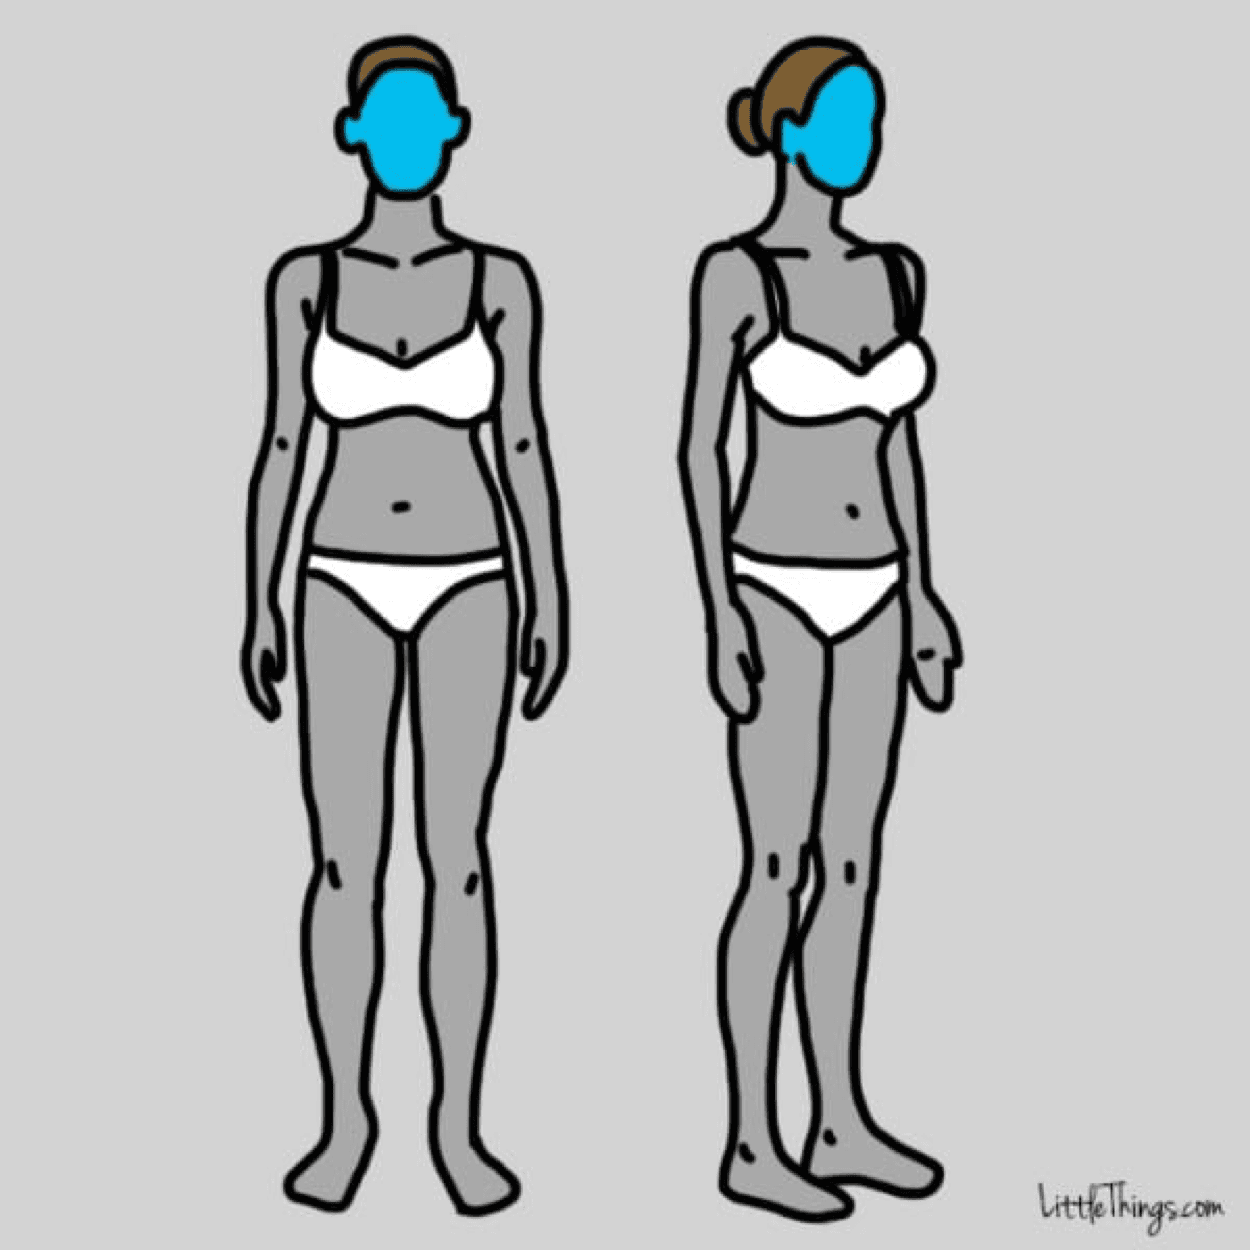 47f8f6a9a 12 Symptoms That You Should NEVER Ignore About Your Thyroid